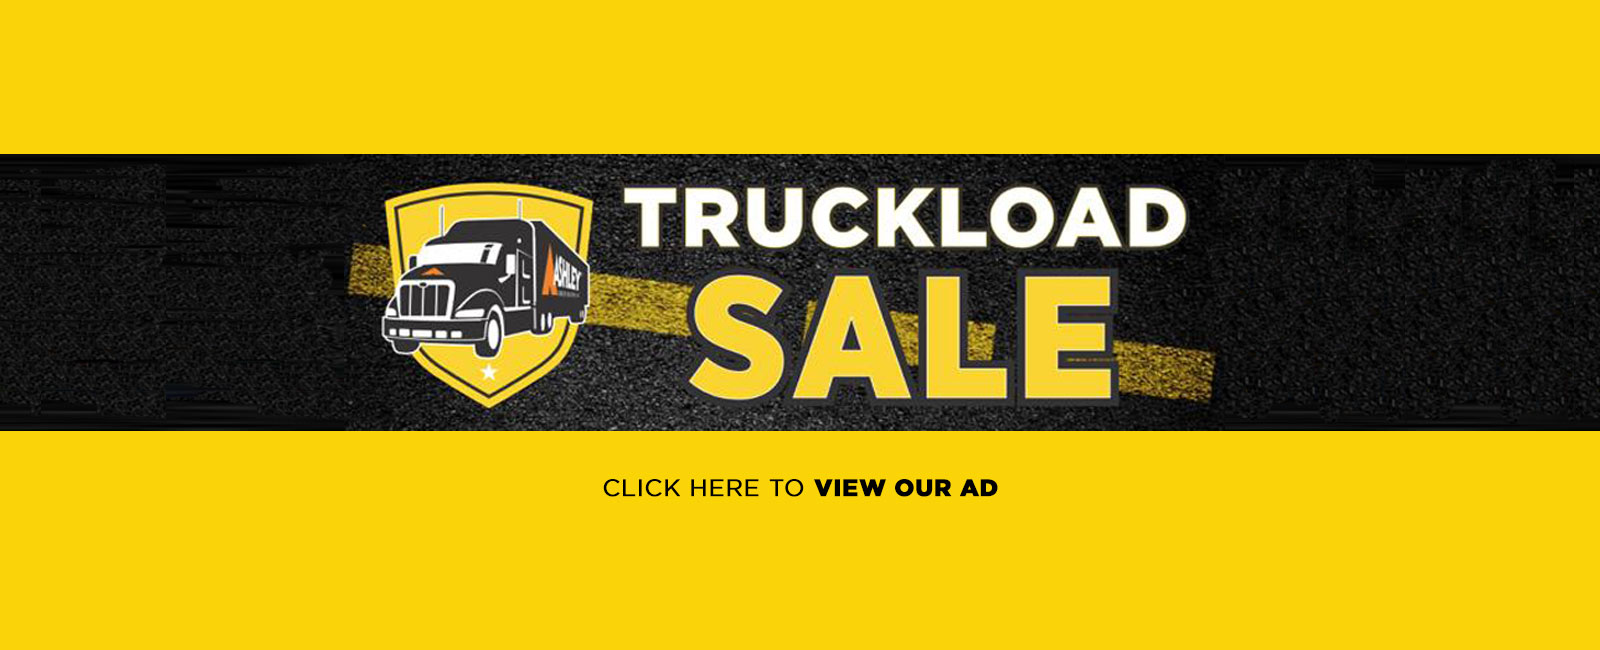 Truckload Sale - Shop 8/10 - 8/31